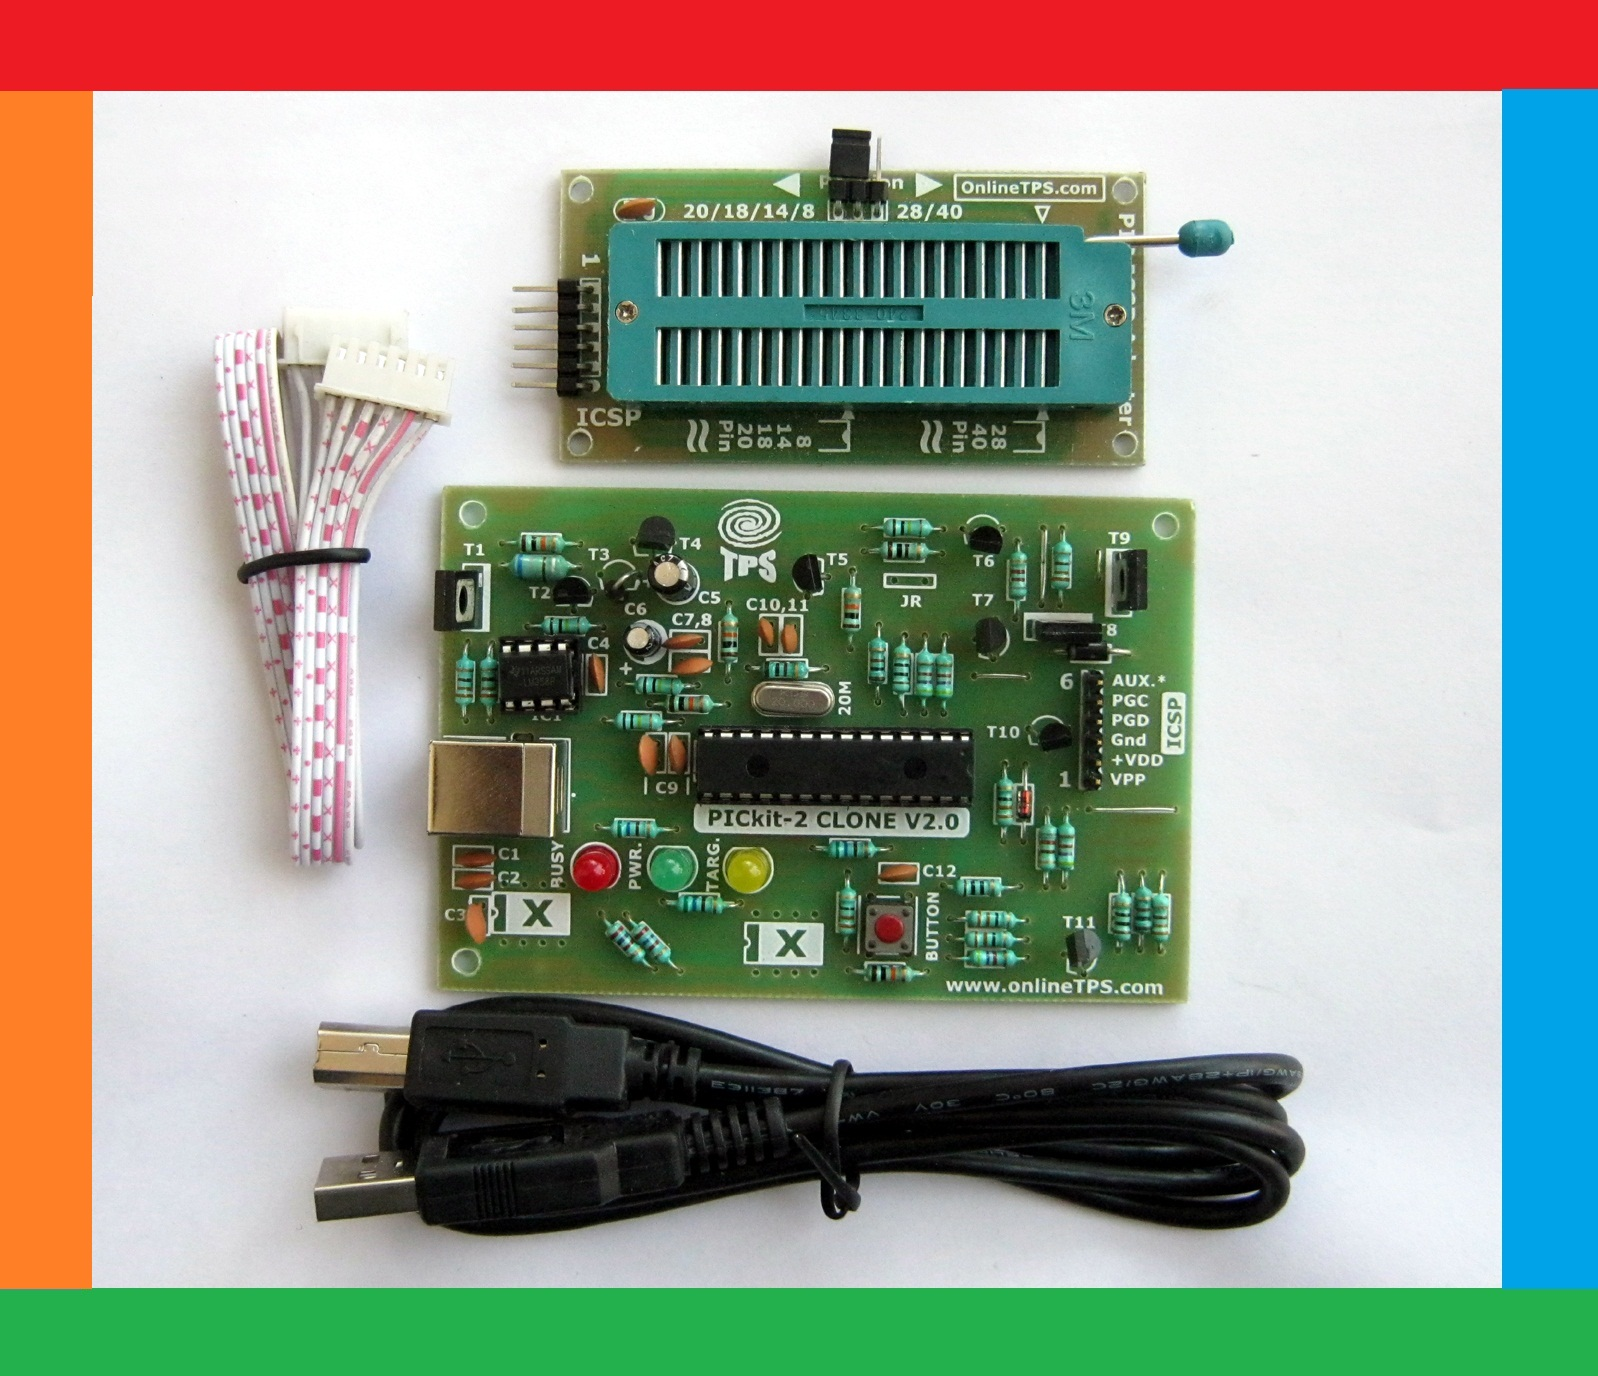 Tested Ok Projects Pickit2 Clone Microchip Pic Microcontroller Combination Lock Using Pic16f84 New Fast Usb Programmer Dip Package Adopter With Mcu Facility Protect Your Code Hex